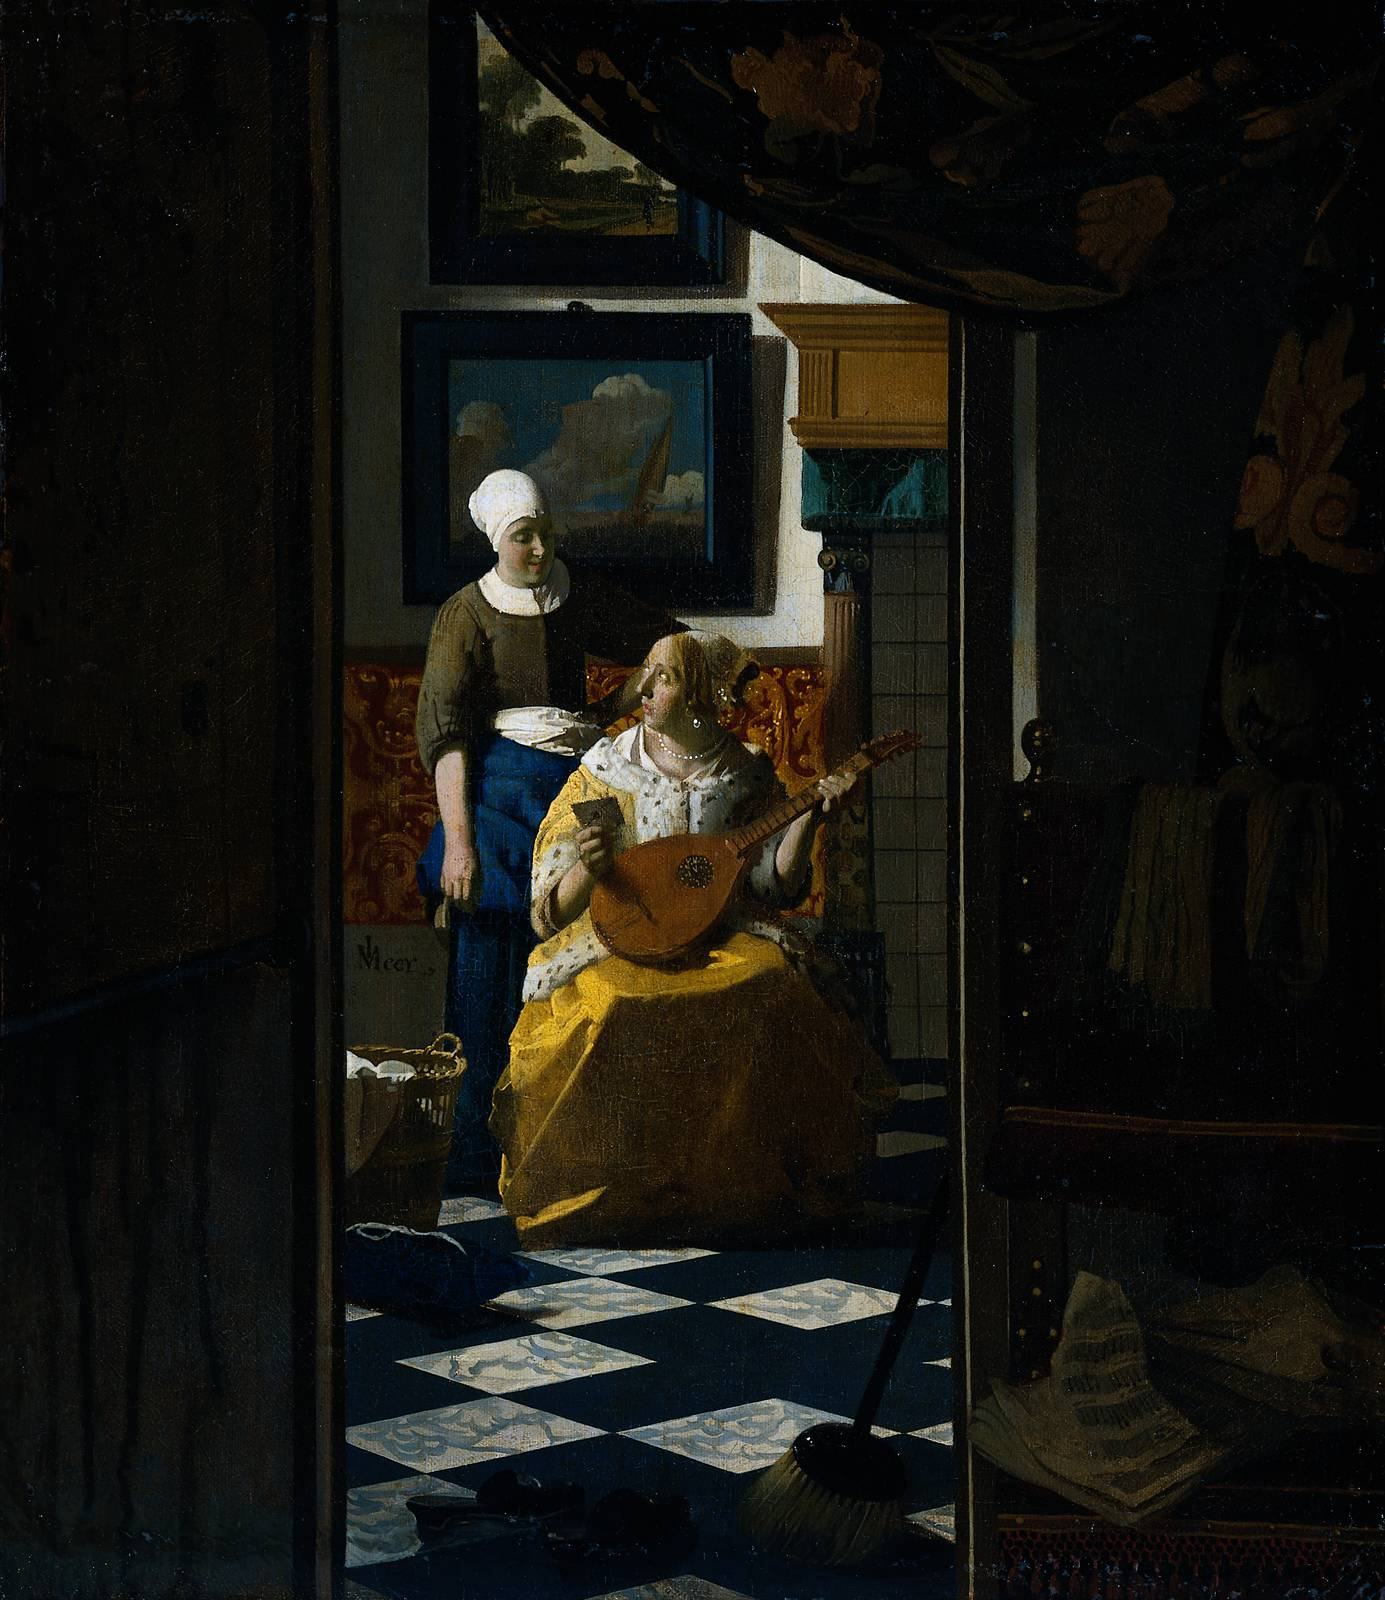 WebMuseum: Vermeer, Jan: The Love Letter